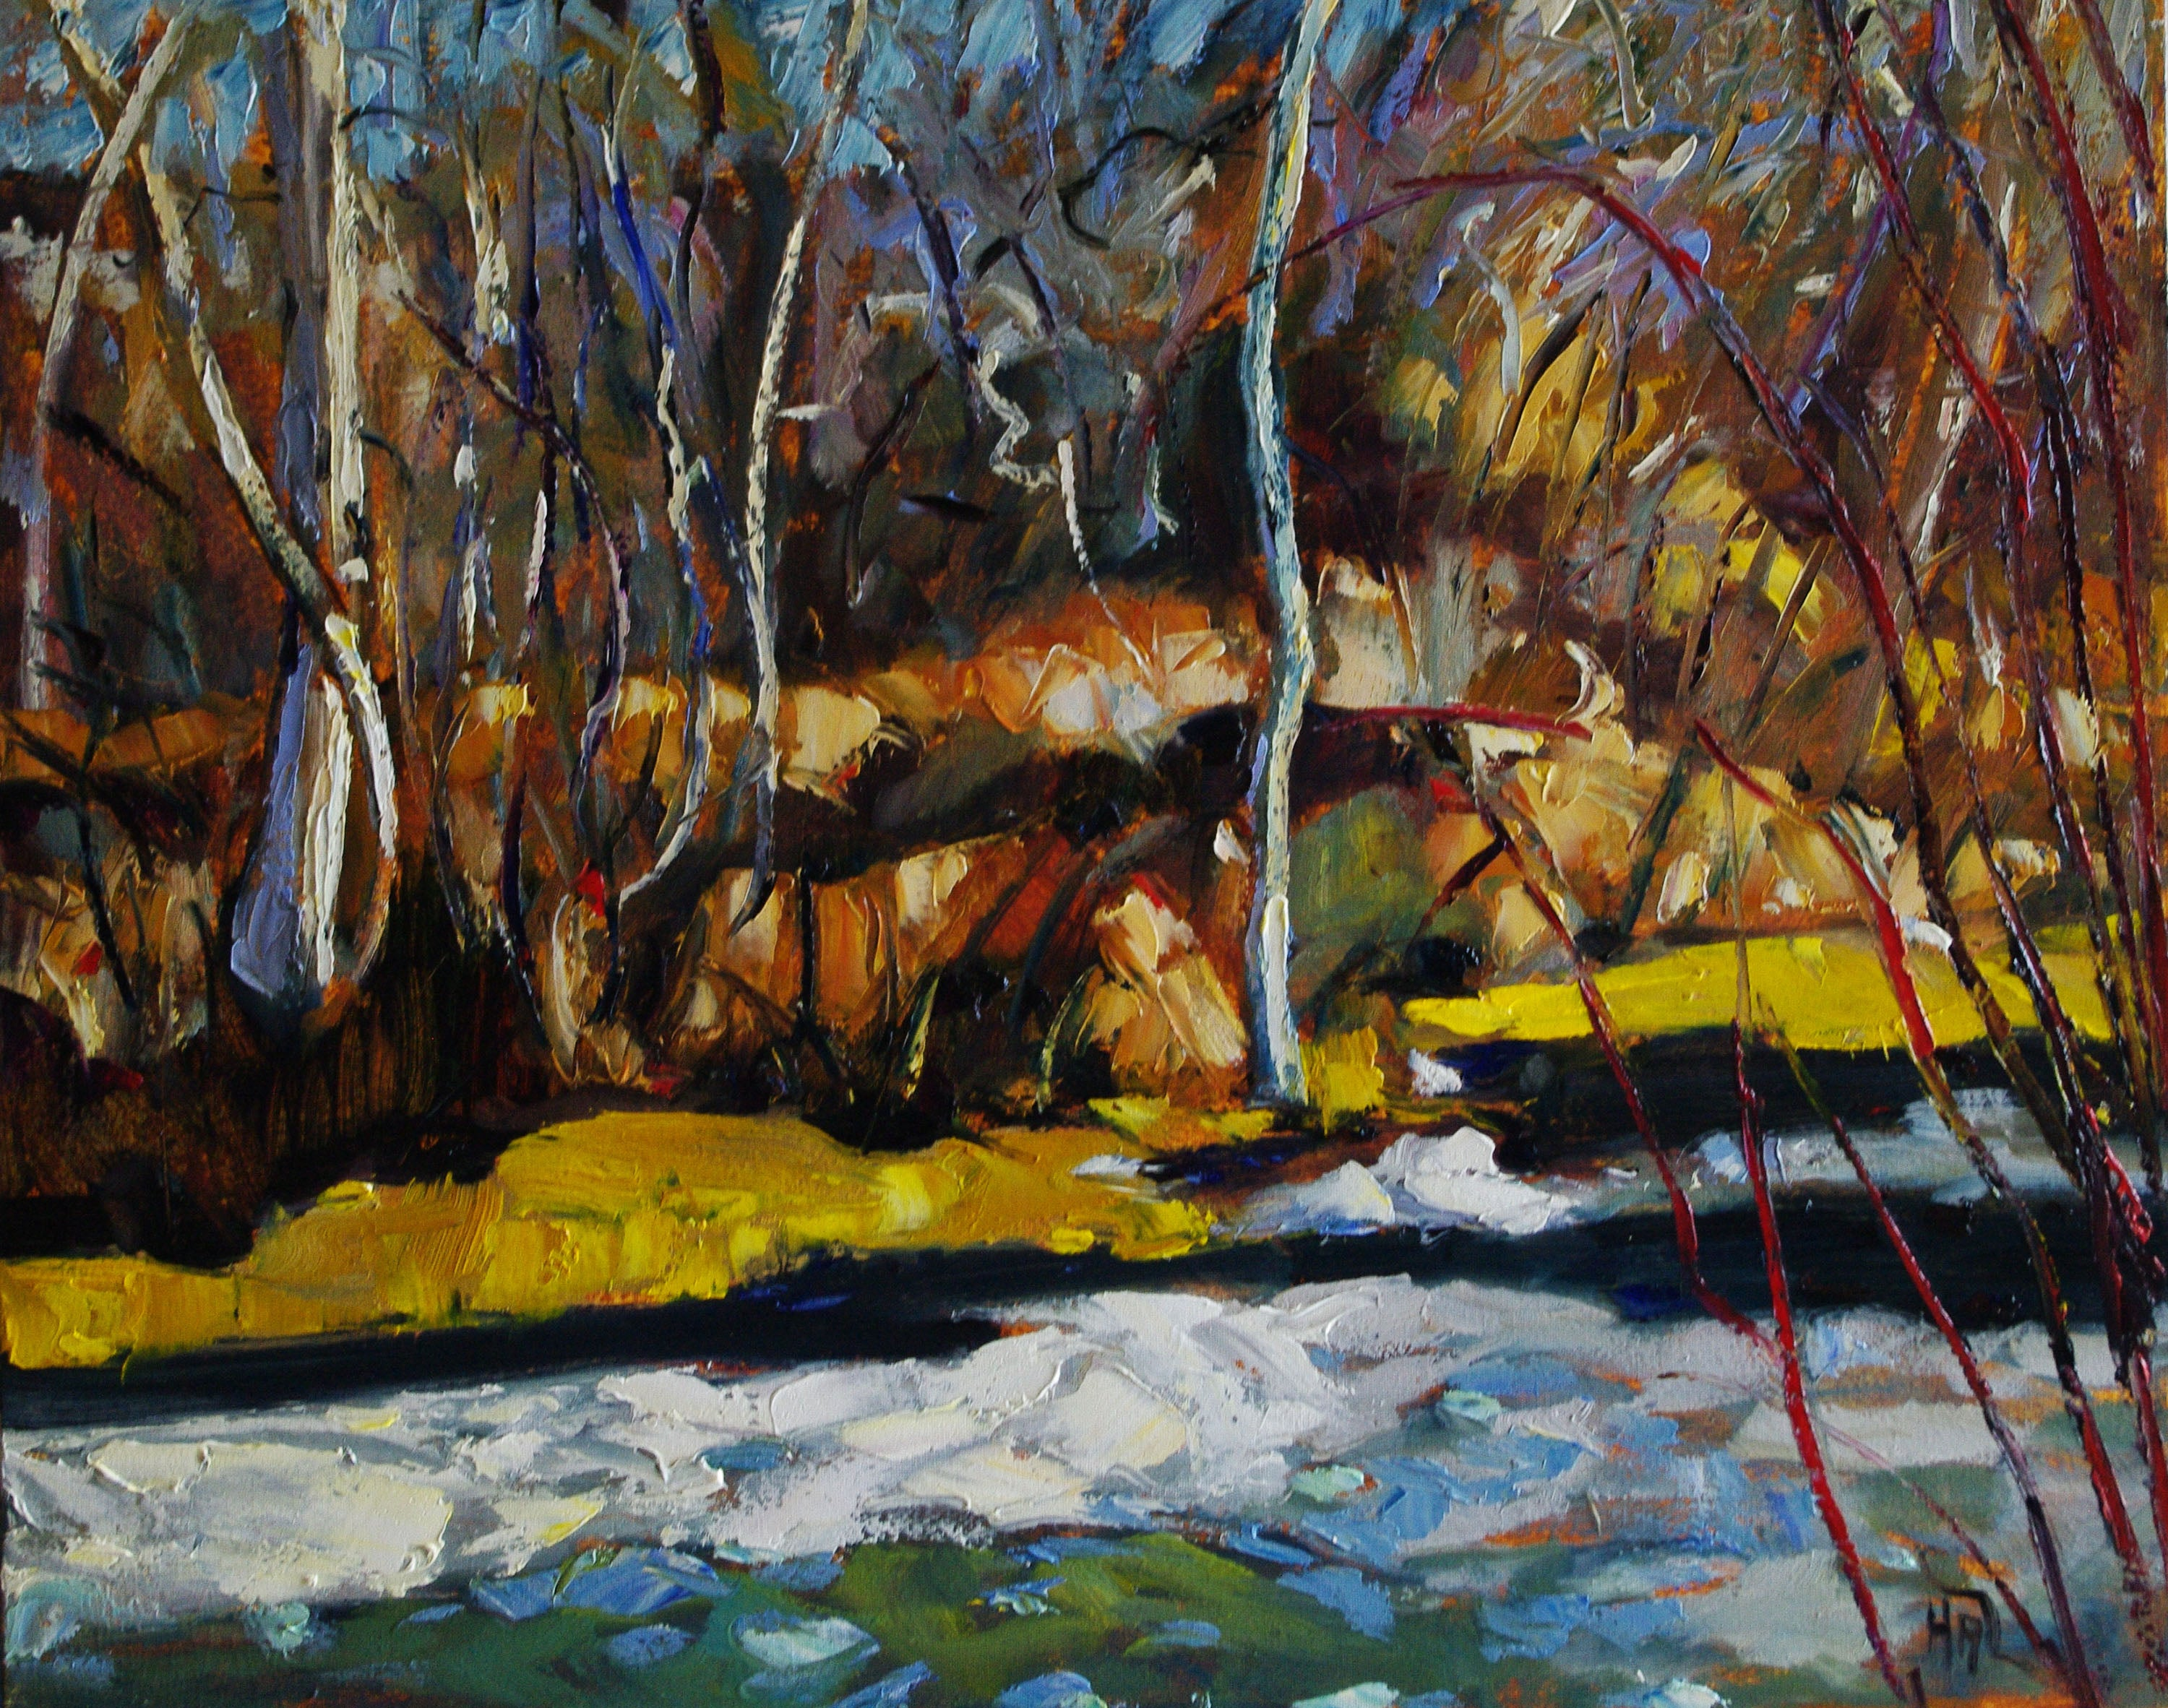 Telling Pond - Halin de Repentigny - painting